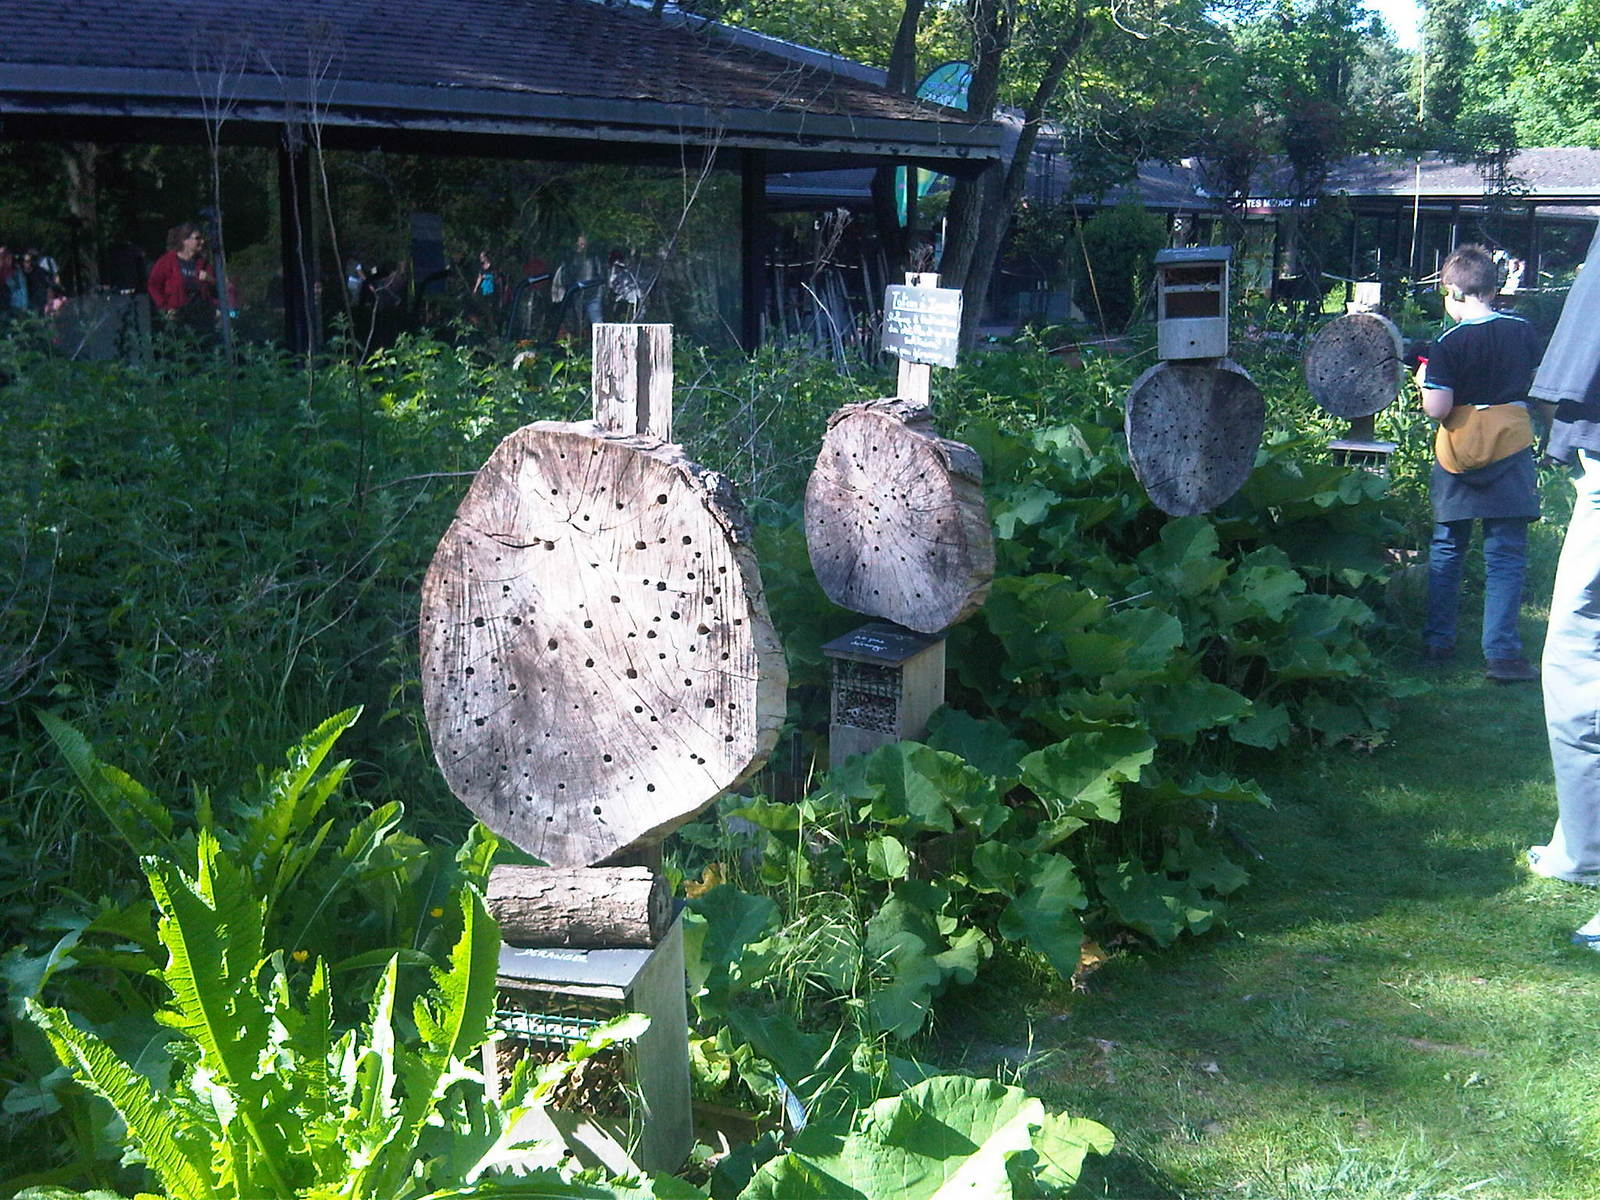 G te insectes nichoirs insectes insects hotel - Hotel a insectes ...